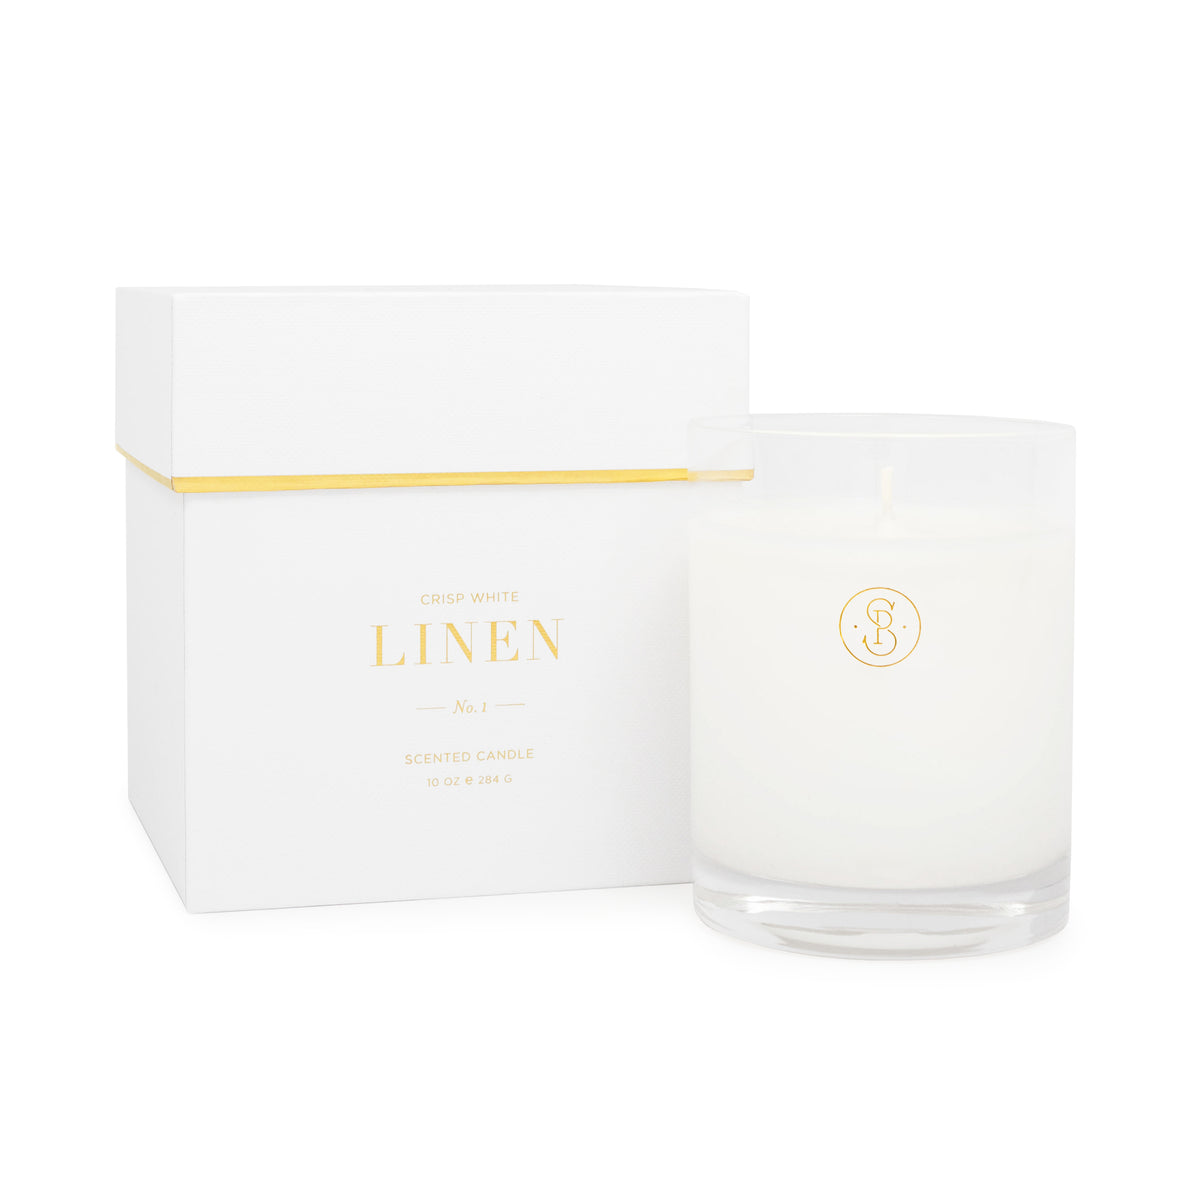 White linen candle with a white box with gold foil detail